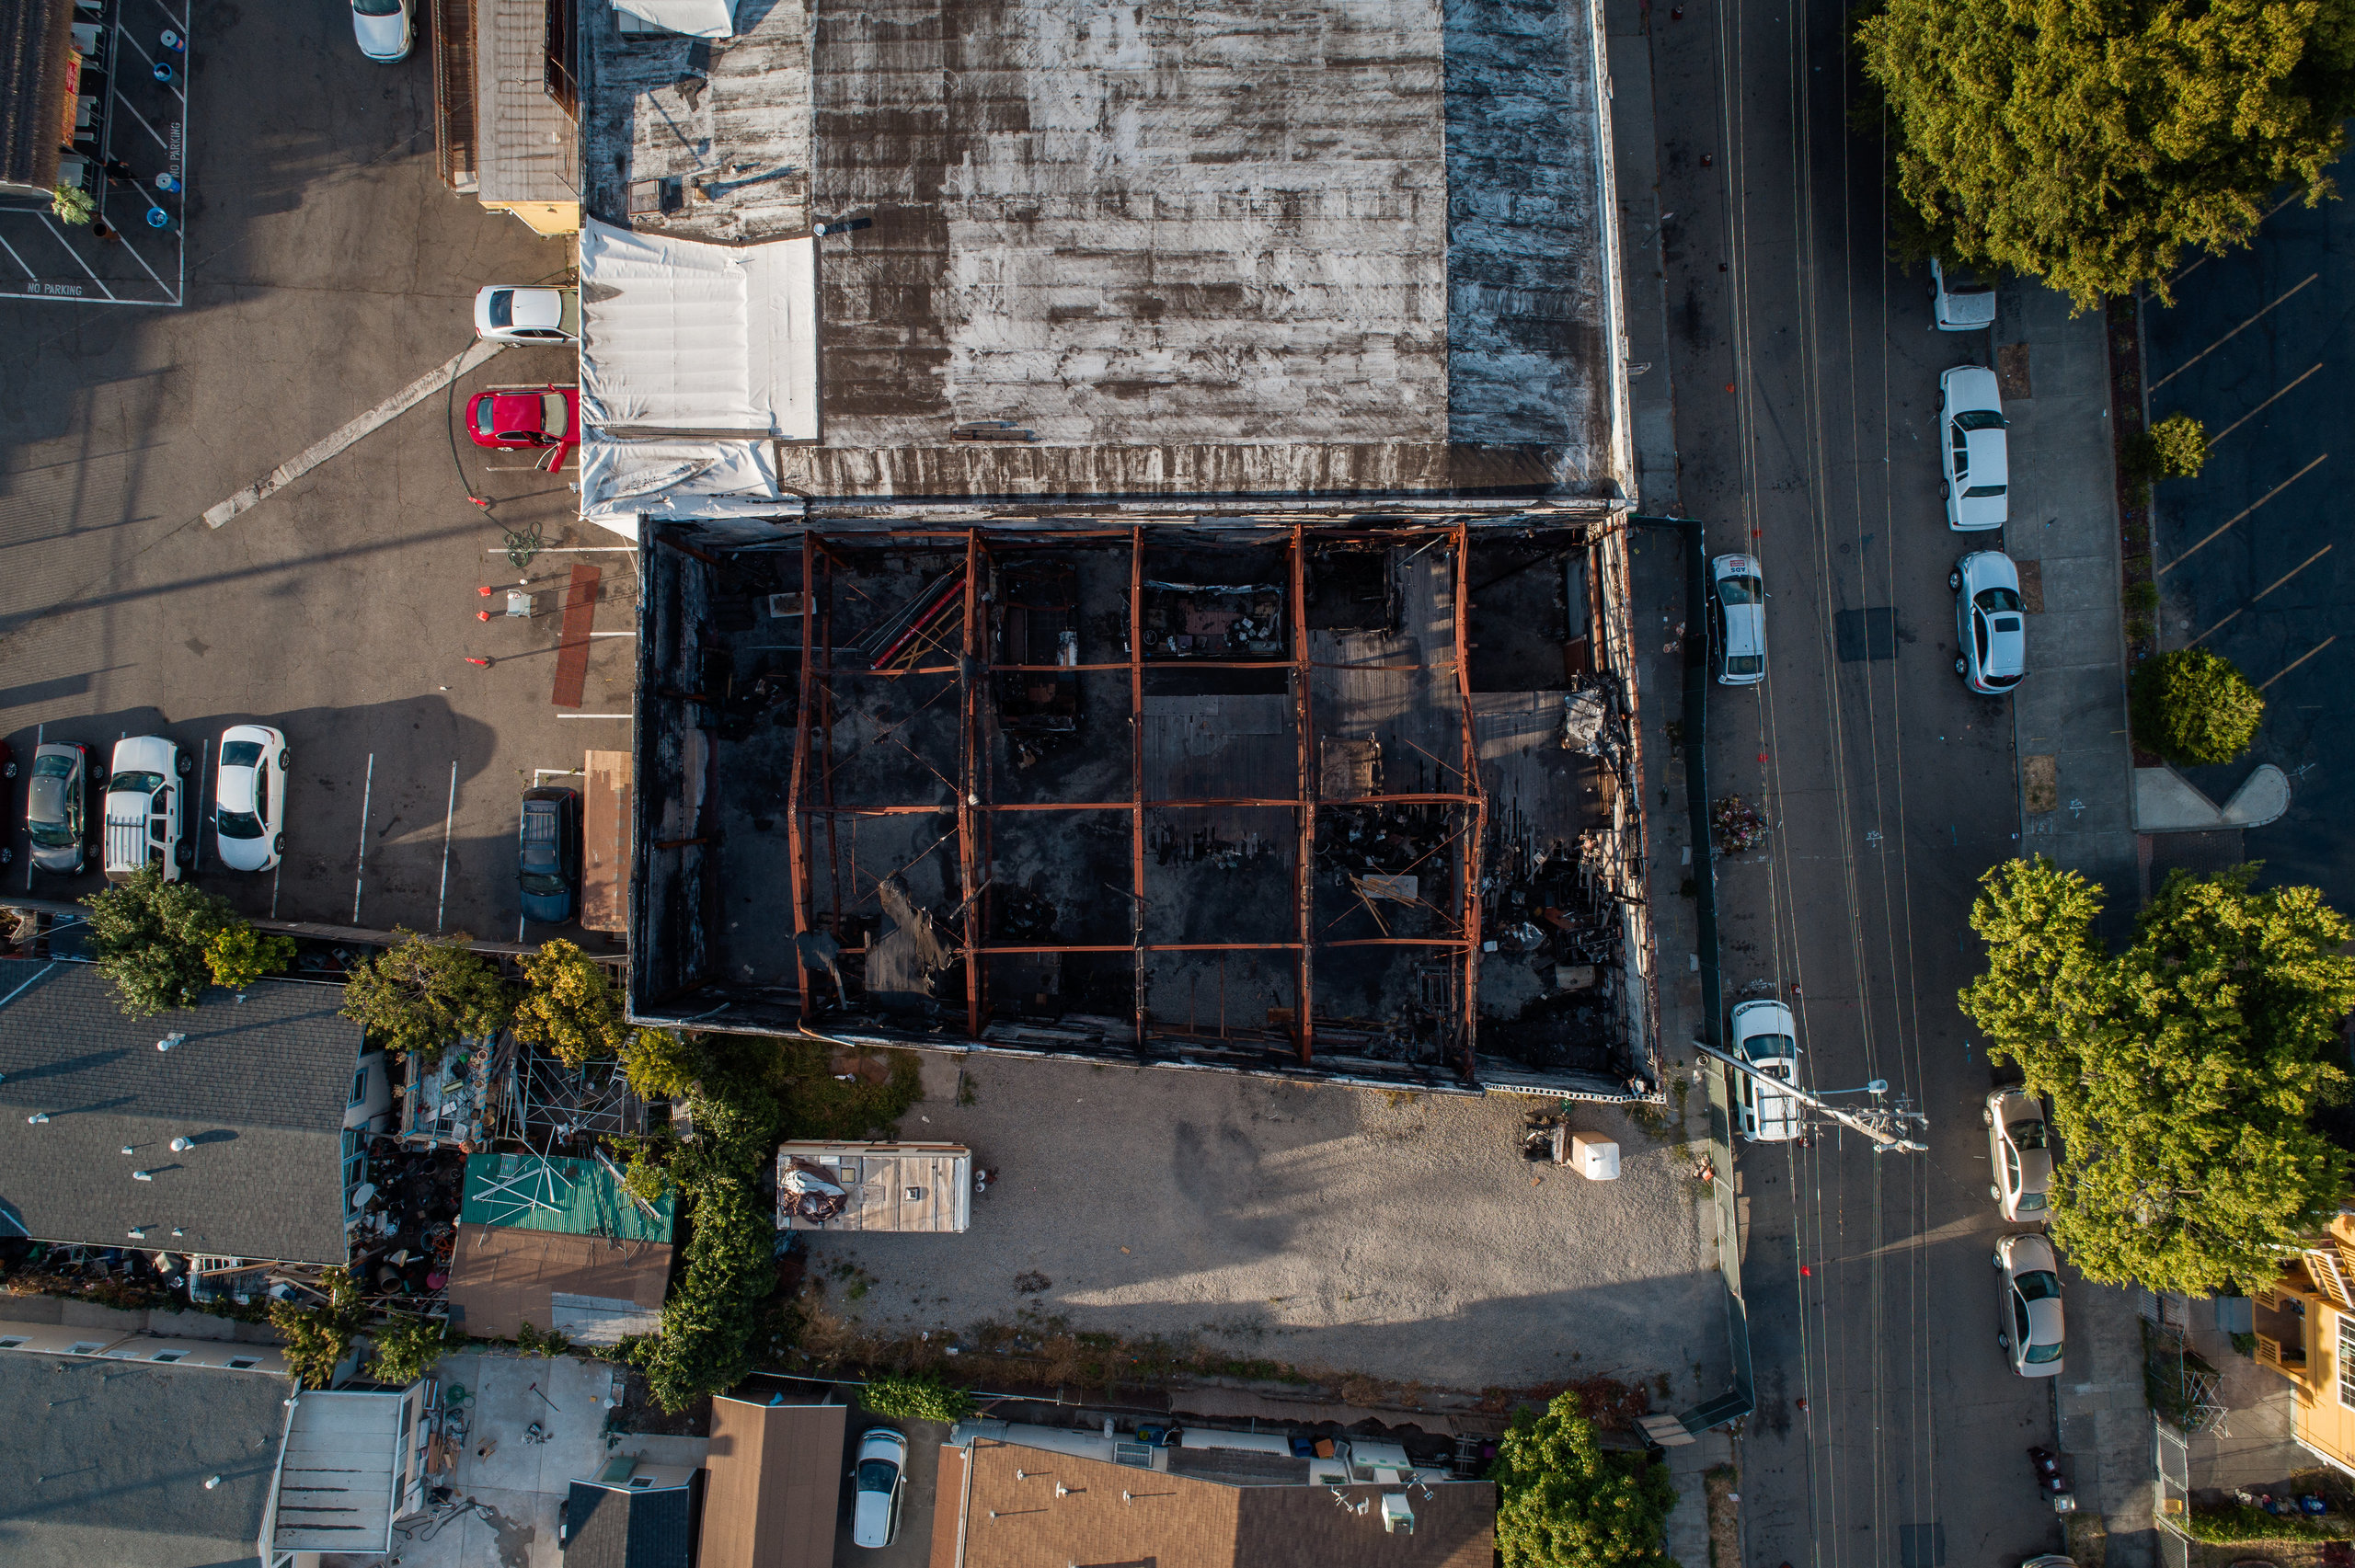 An electrical fire had occurred at Ghost Ship two years before the 2016 tragedy.